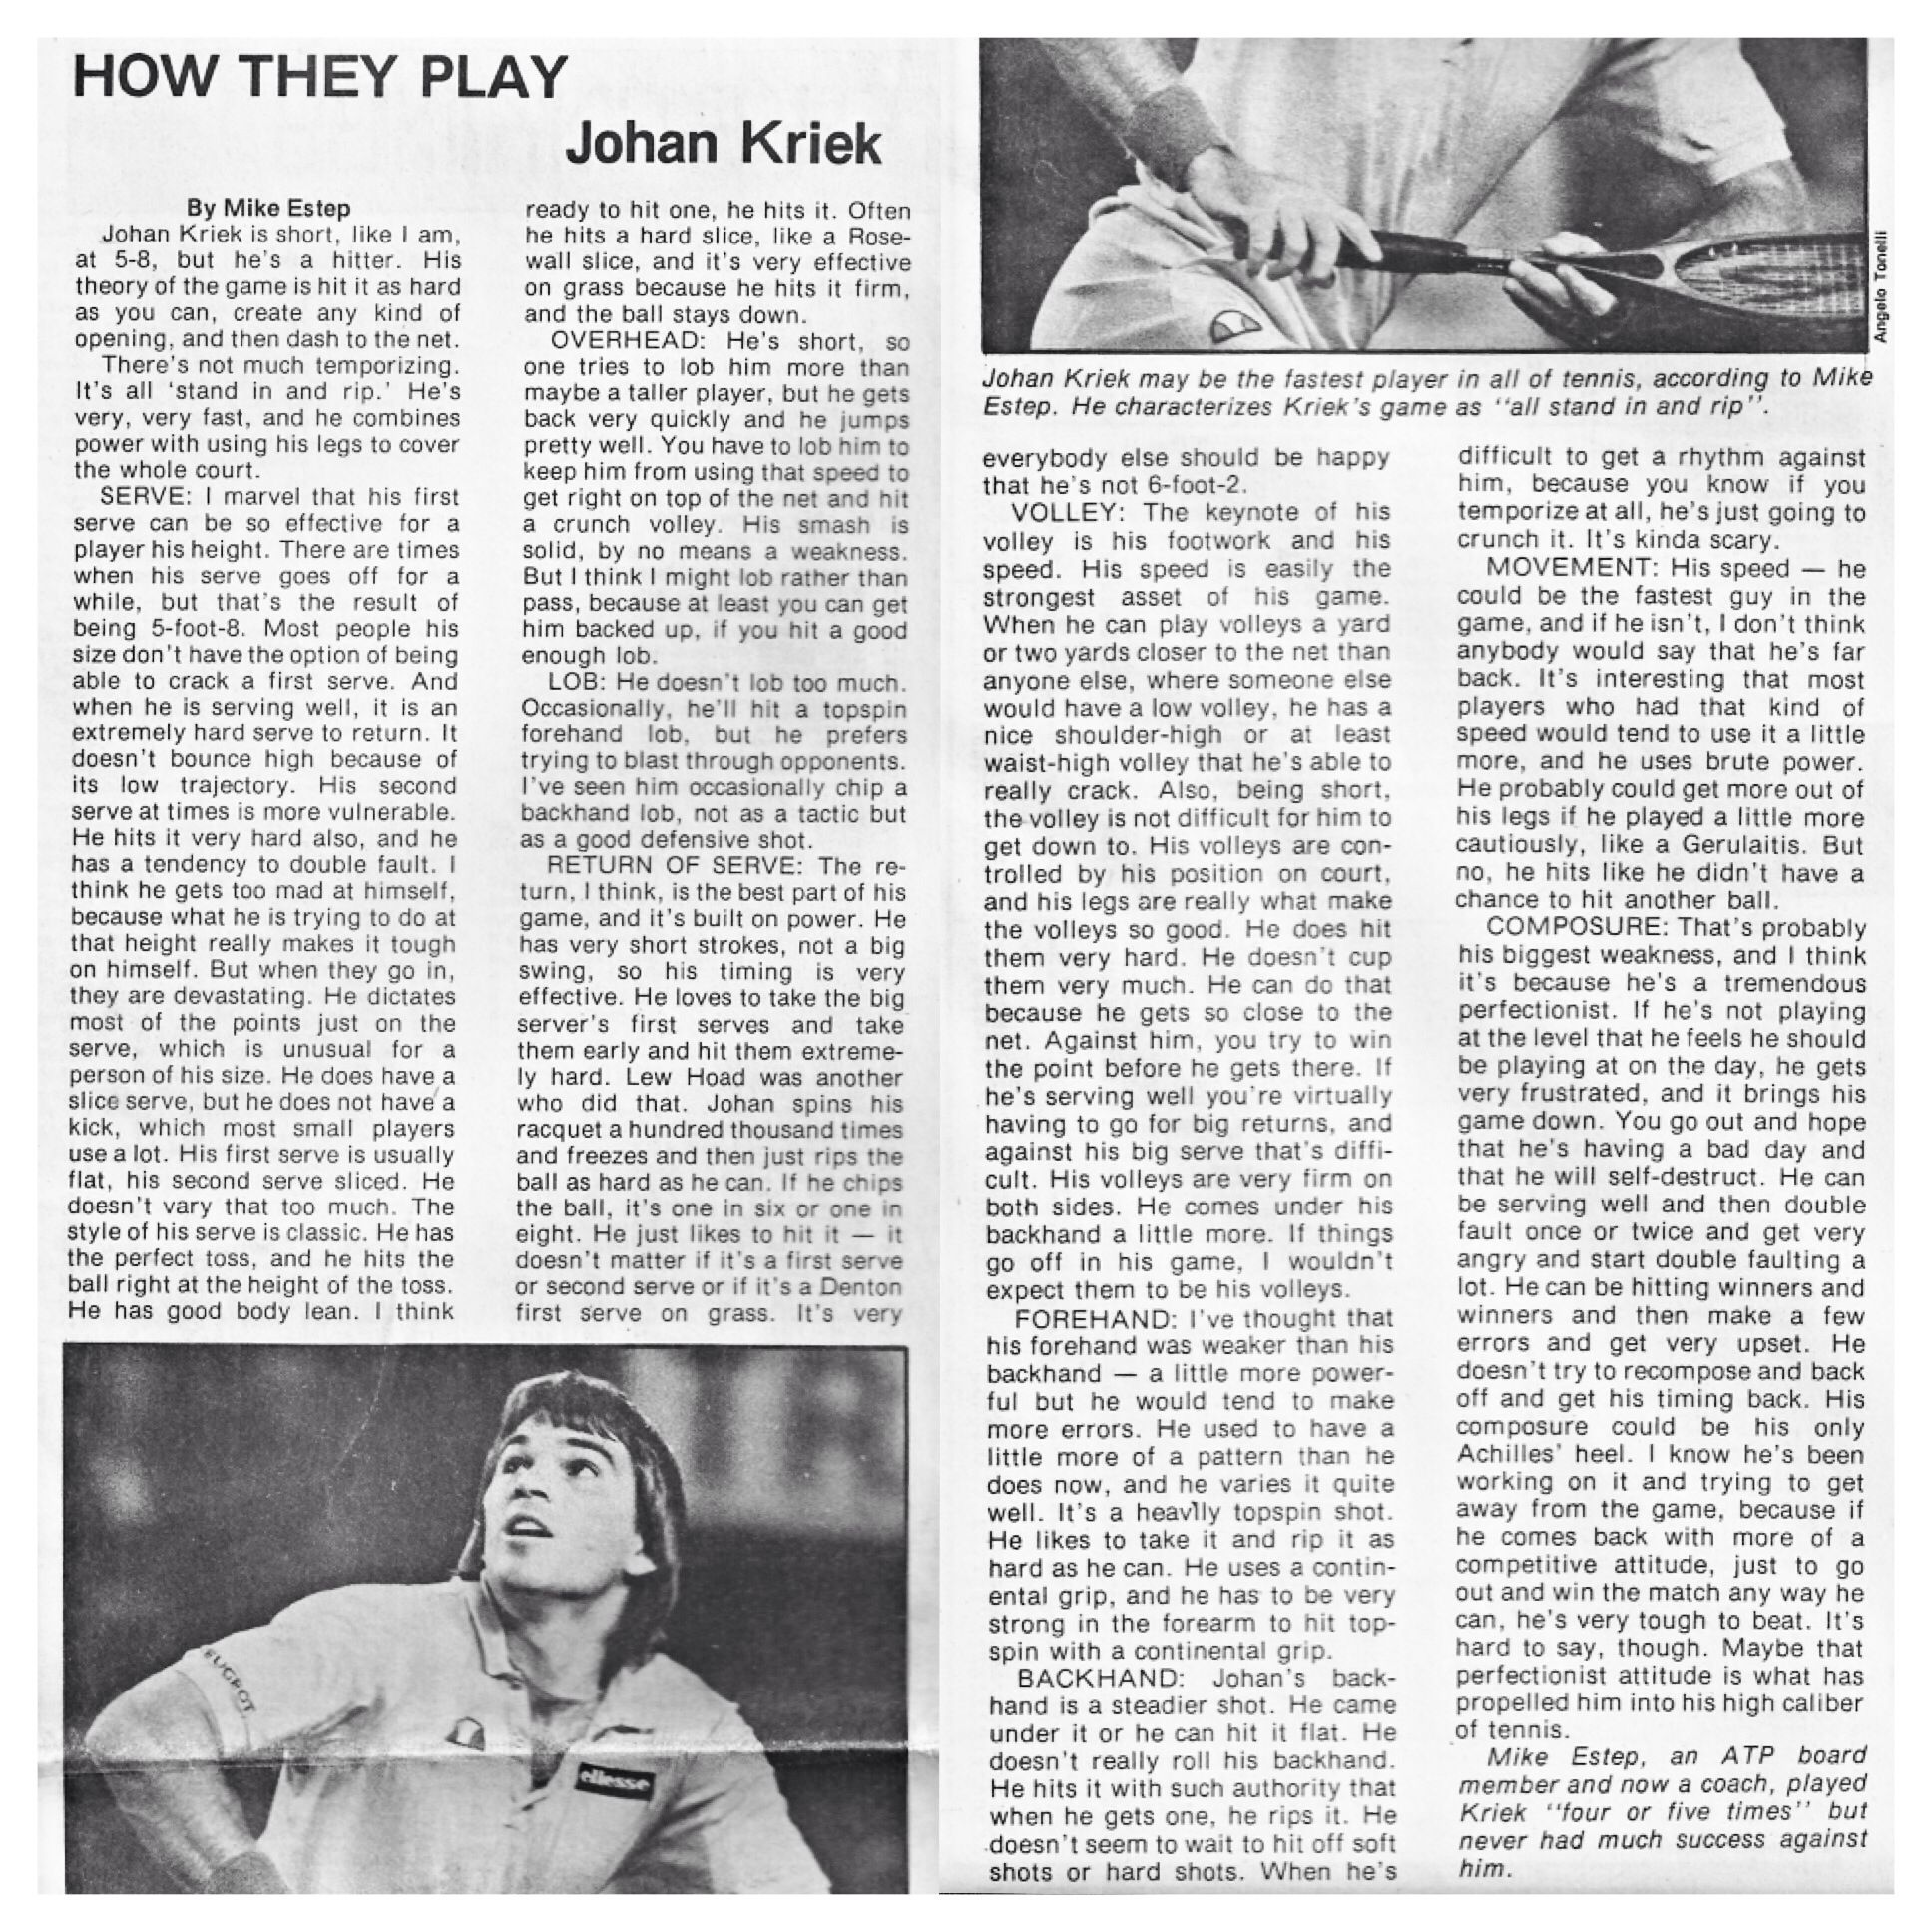 Throwbackthursday Tbt How They Play 1984 Article About Johan Kriek S Game Written By Mike Estep Johan Kriek May Tennis Coach Andre Agassi John Mcenroe